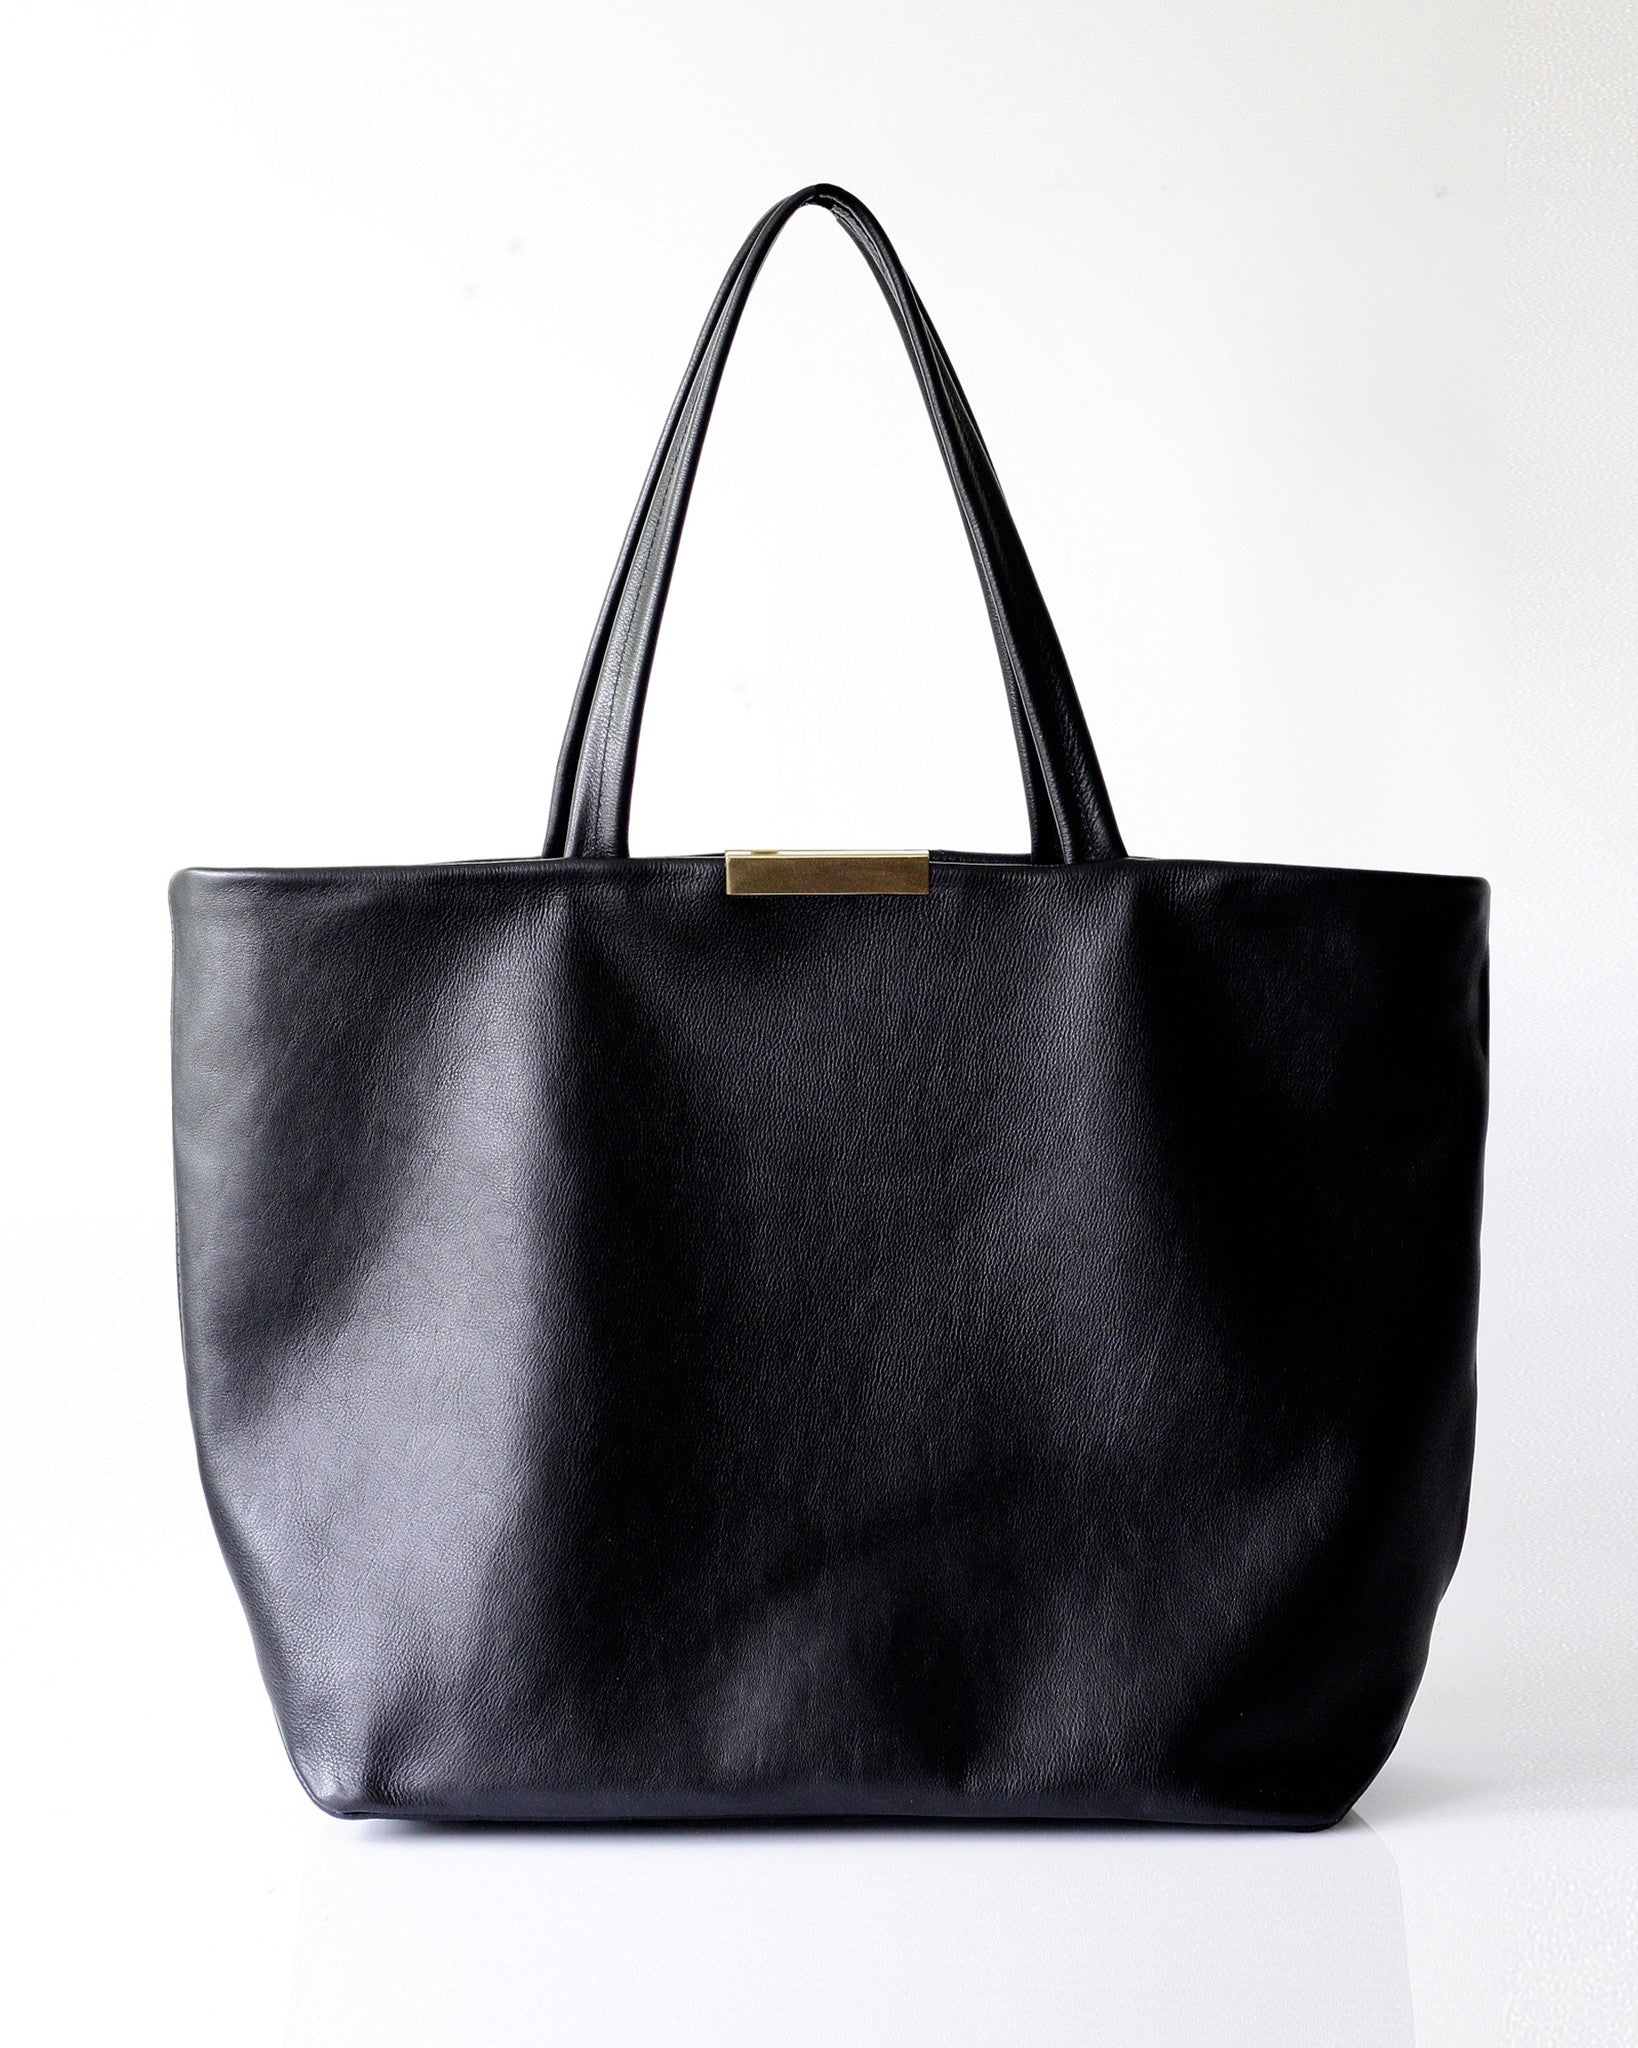 Meena Tote - Opelle bag Permanent Collection - Opelle leather handbag handcrafted leather bag toronto Canada